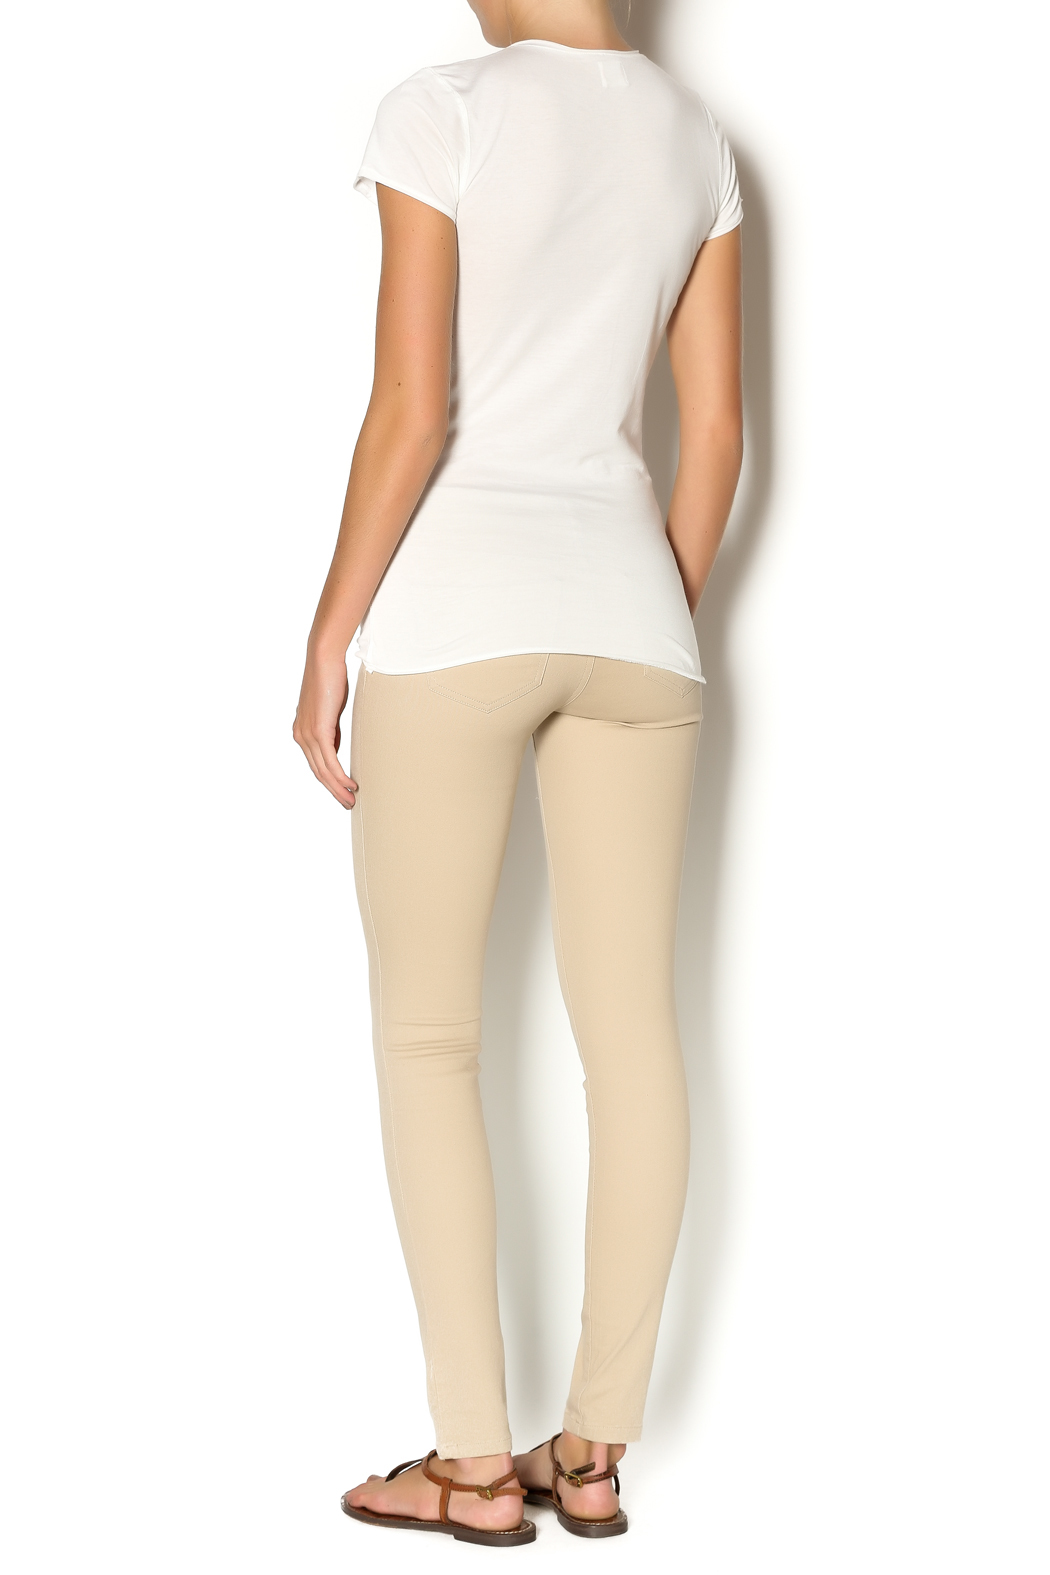 Junior Tan Skinny Jeans from Arkansas by Vintage Glam and Junque ...